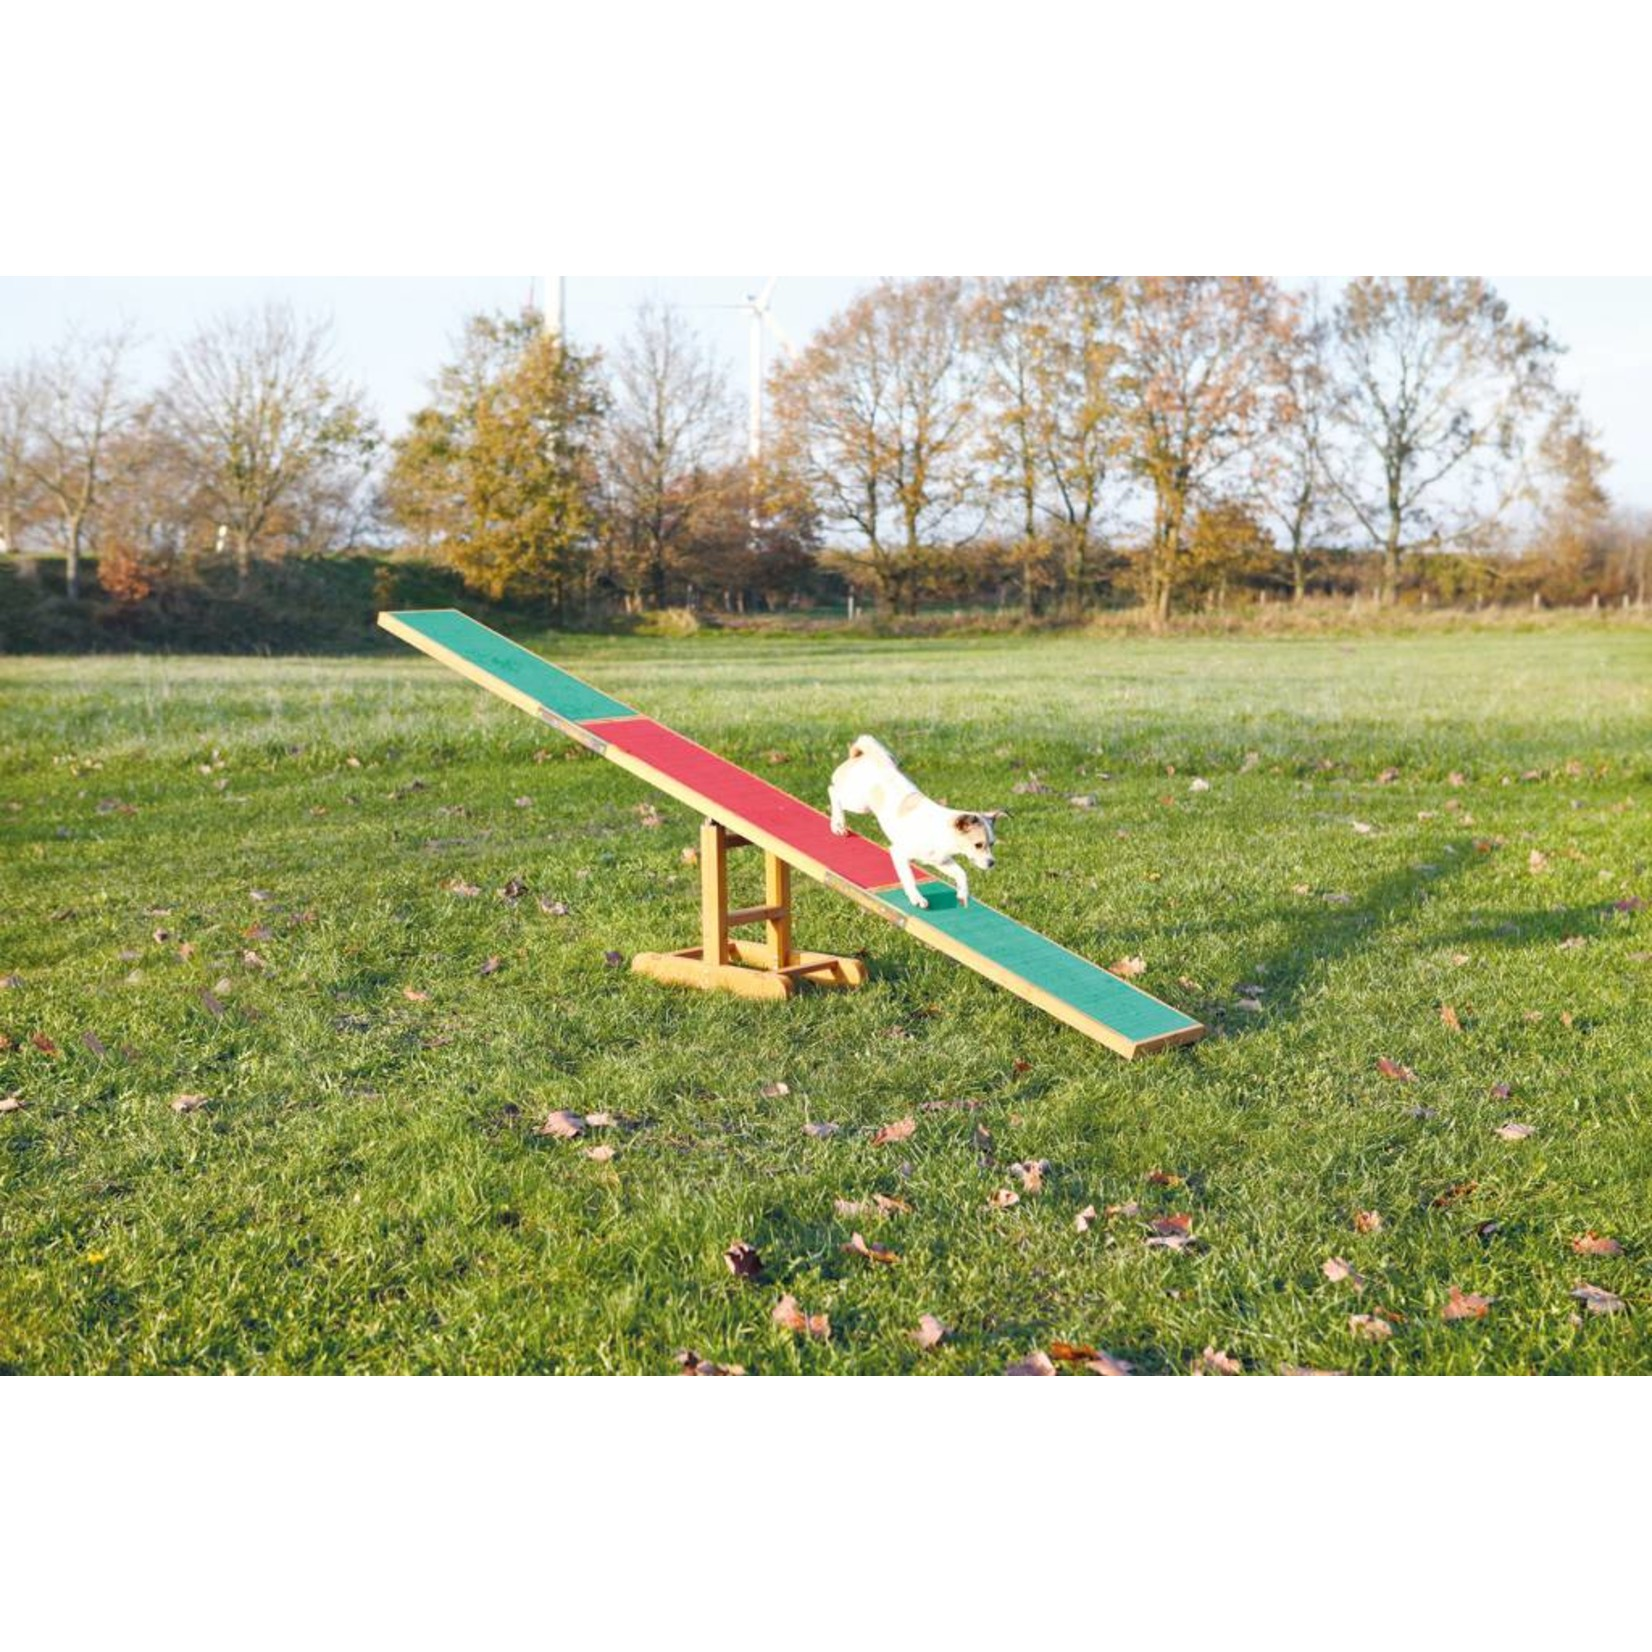 Trixie Dog Activity Agility Seesaw, 300 x 54 x 34cm